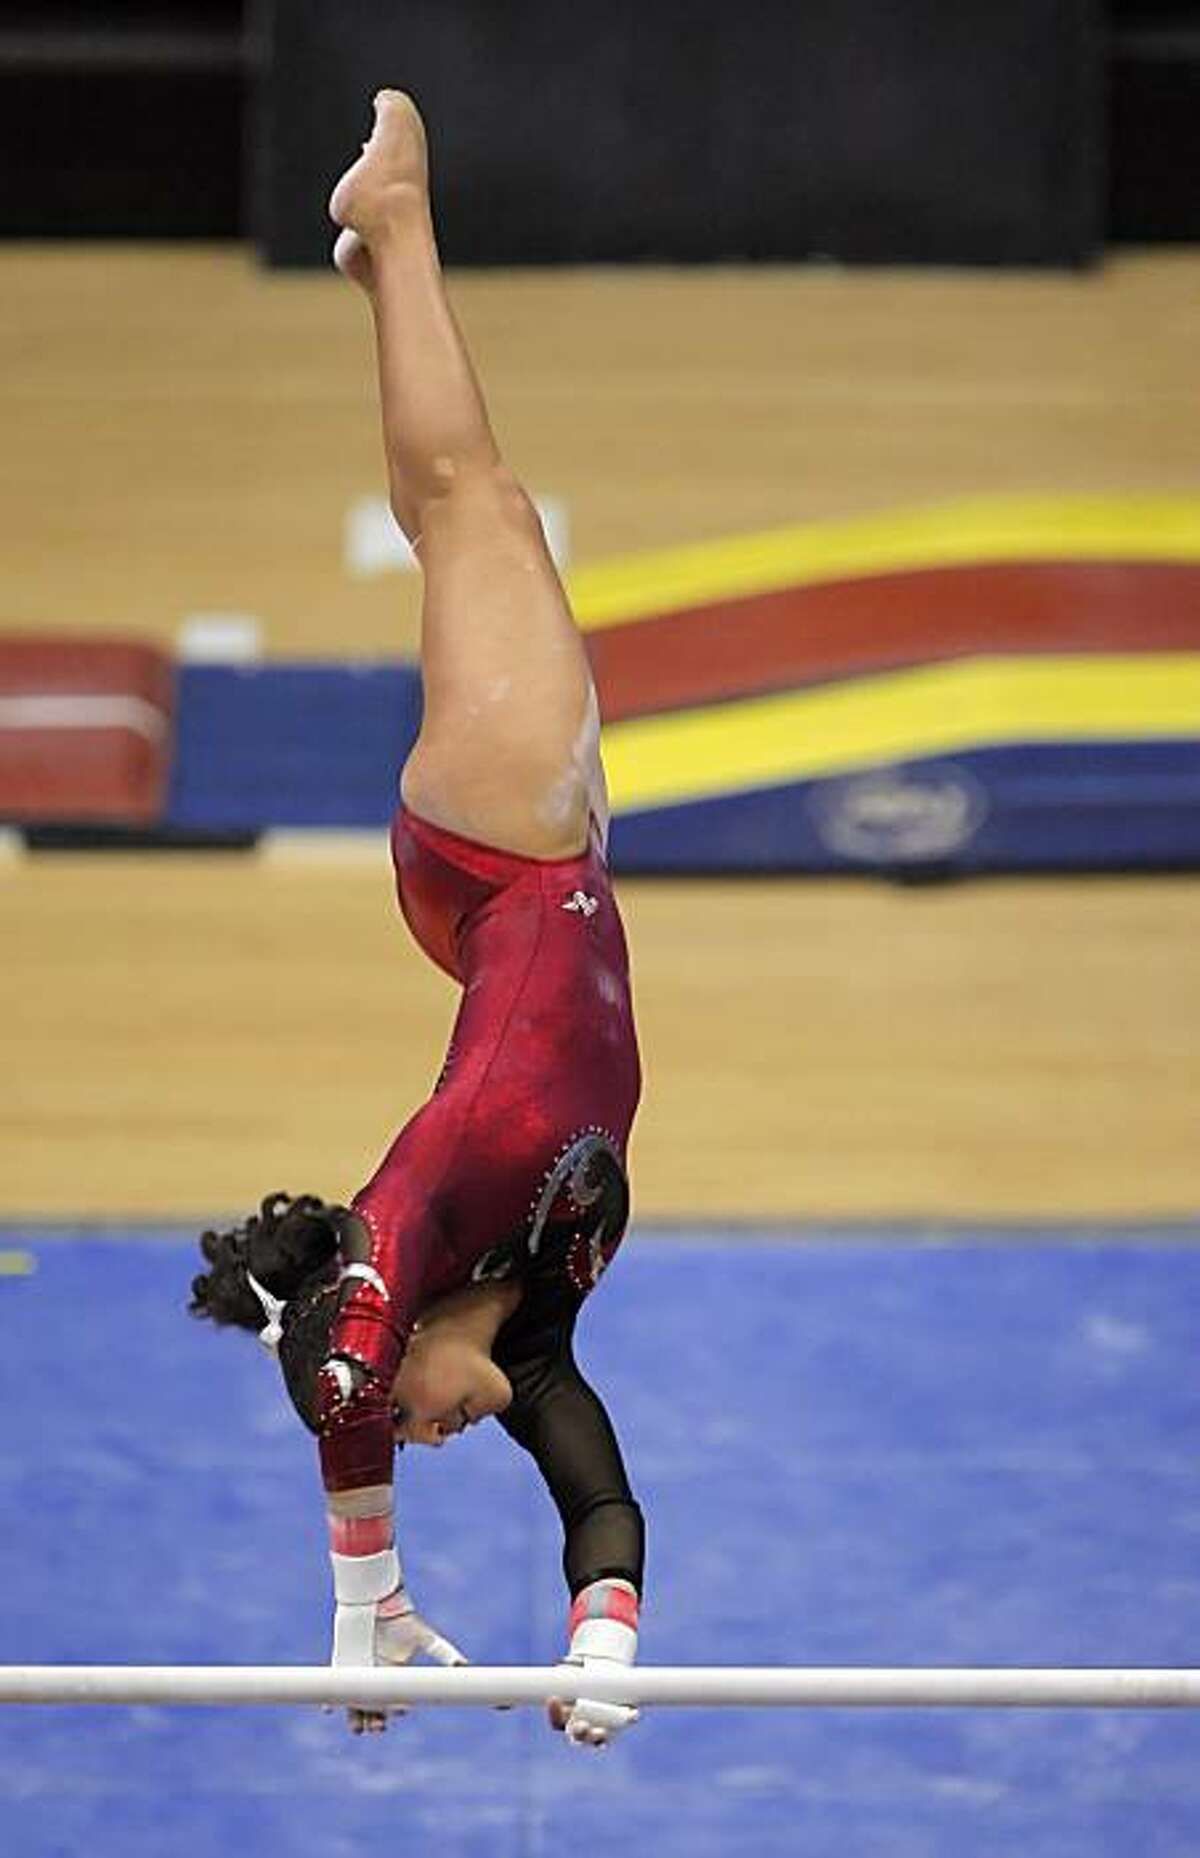 Stanford gymnast Ashley Morgan competes on the parallel bars during a gymnastics competition at Stanford University in Palo Alto, Calif., on Sunday, February 28, 2010. Morgan's father is Baseball Hall of Famer, Joe Morgan.